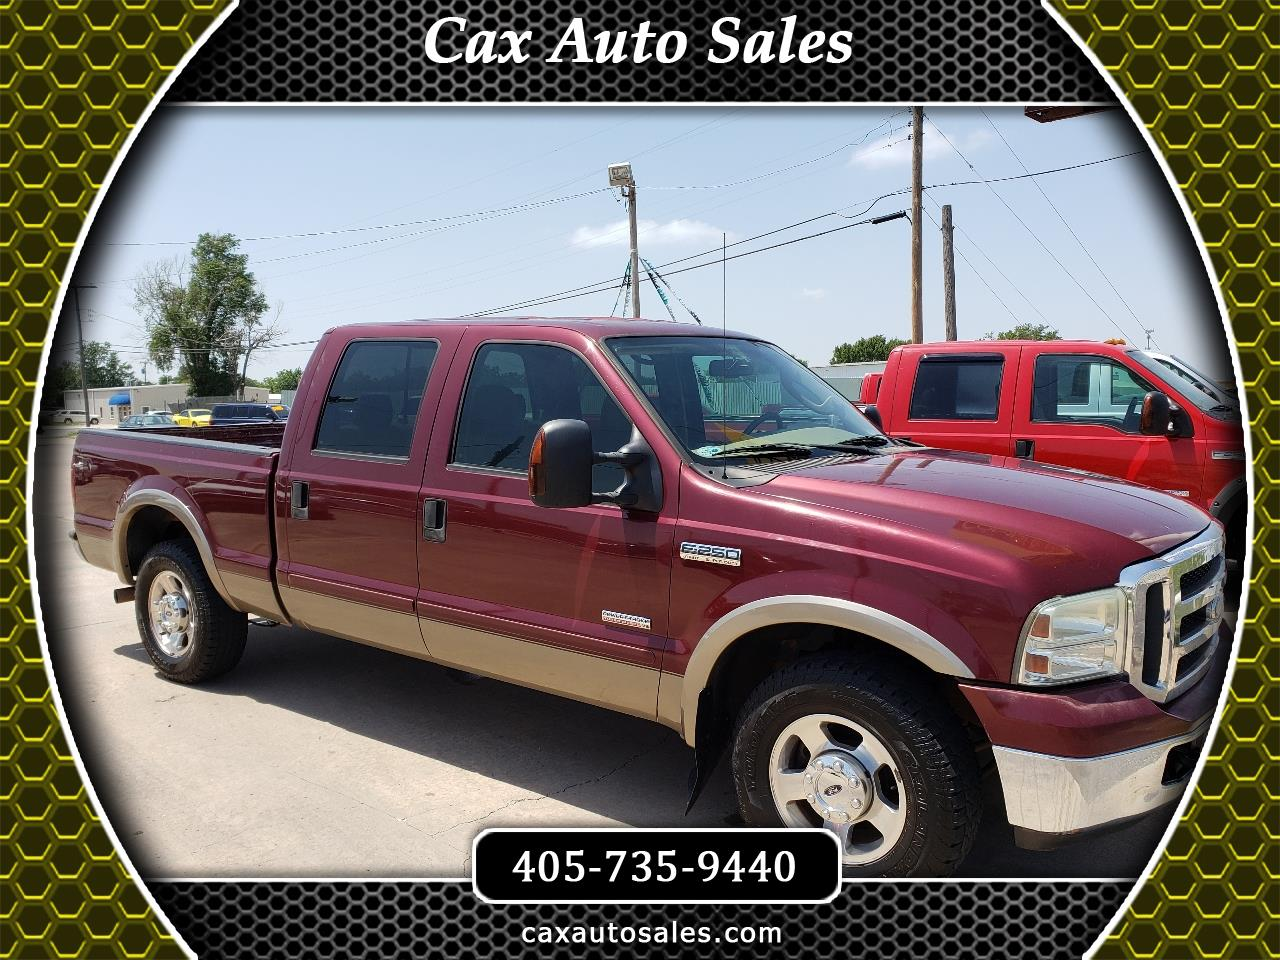 Ford F-250 SD Lariat Crew Cab Long Bed 2WD 2006